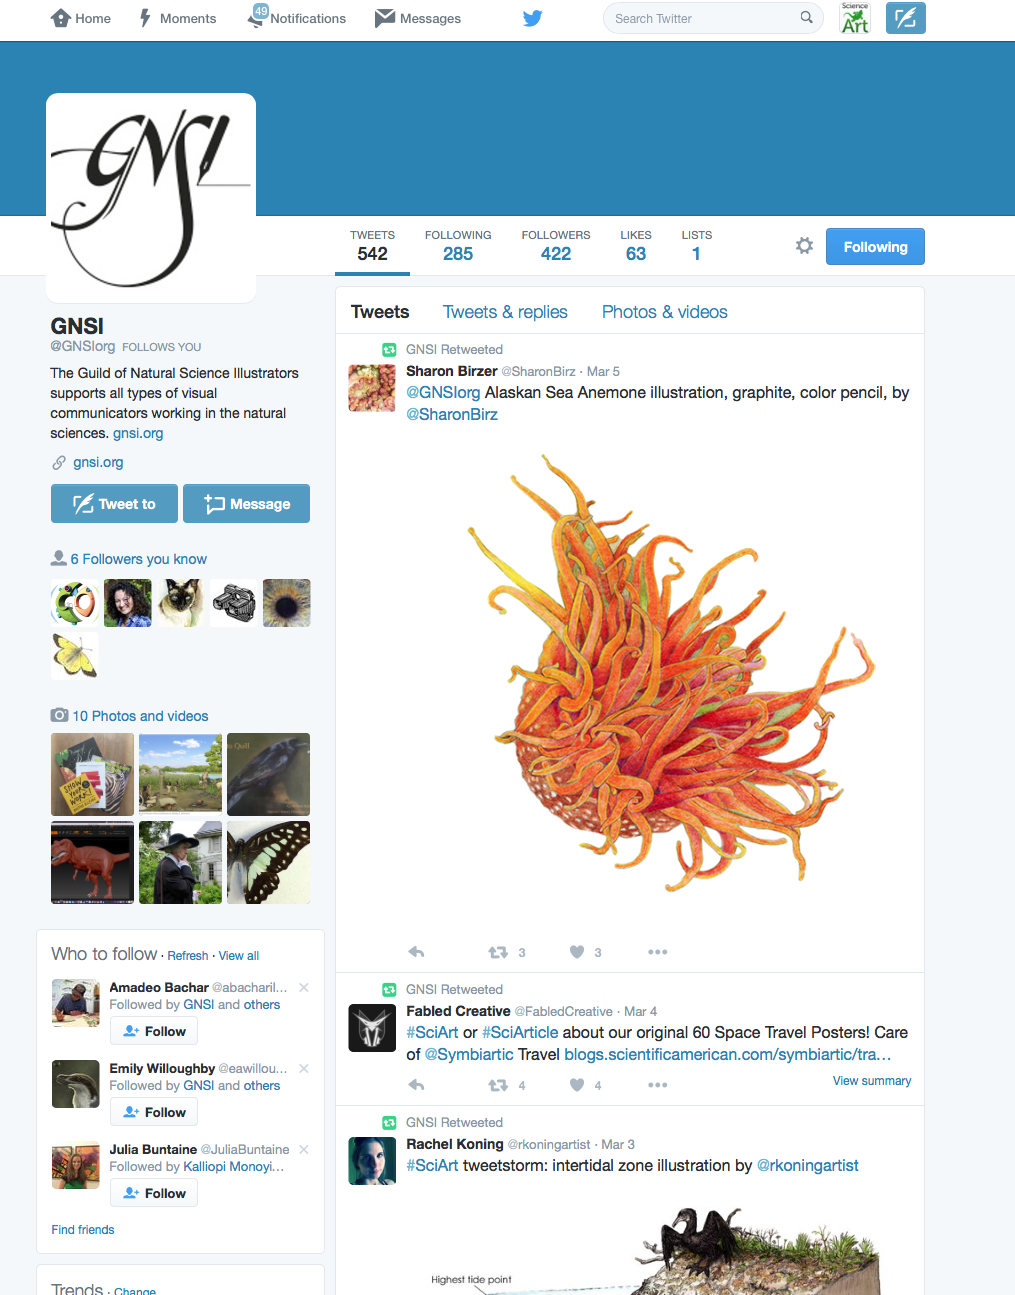 GNSI Twitter interface